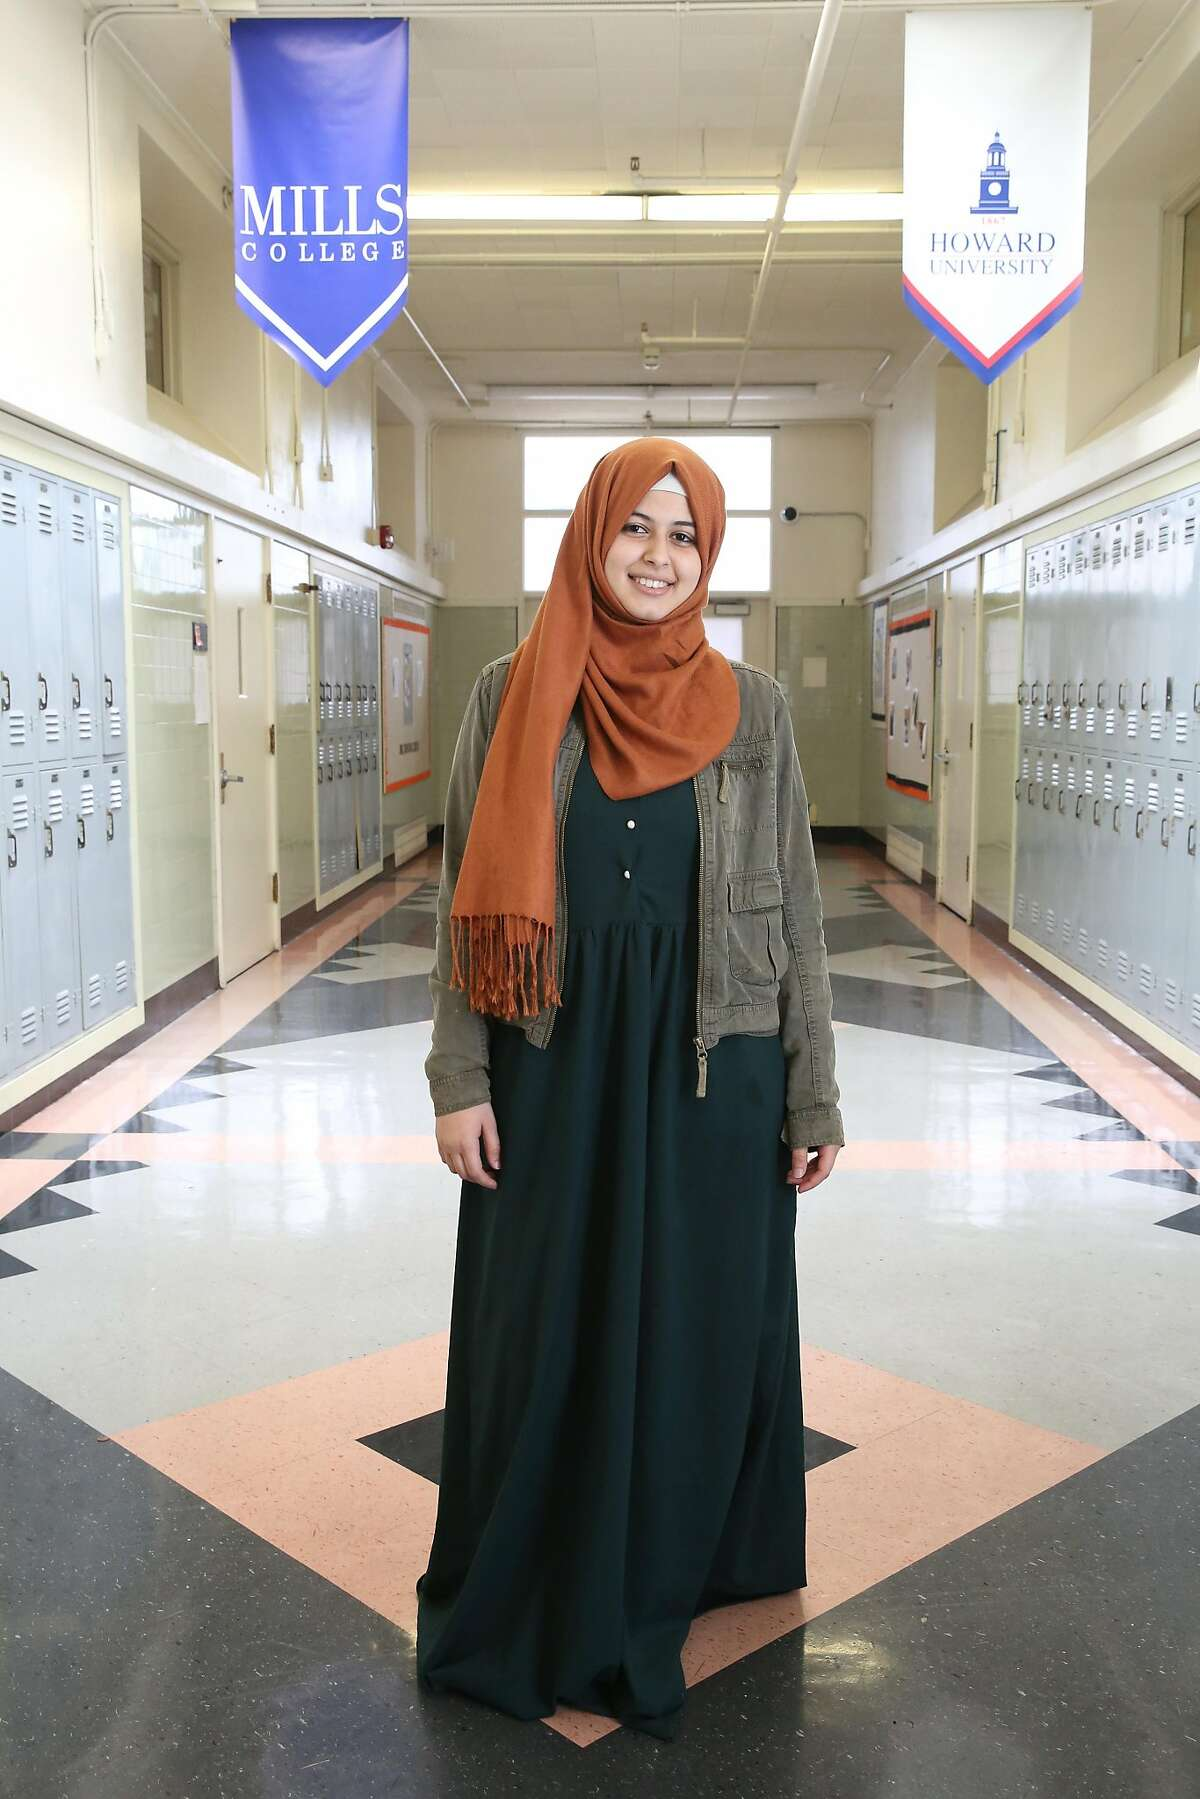 Senior student Haifa Algabri, 17 years old, at McClymonds High School as she talks about attending Mills College after graduating on Friday, May 18, 2018 in Oakland, Calif.